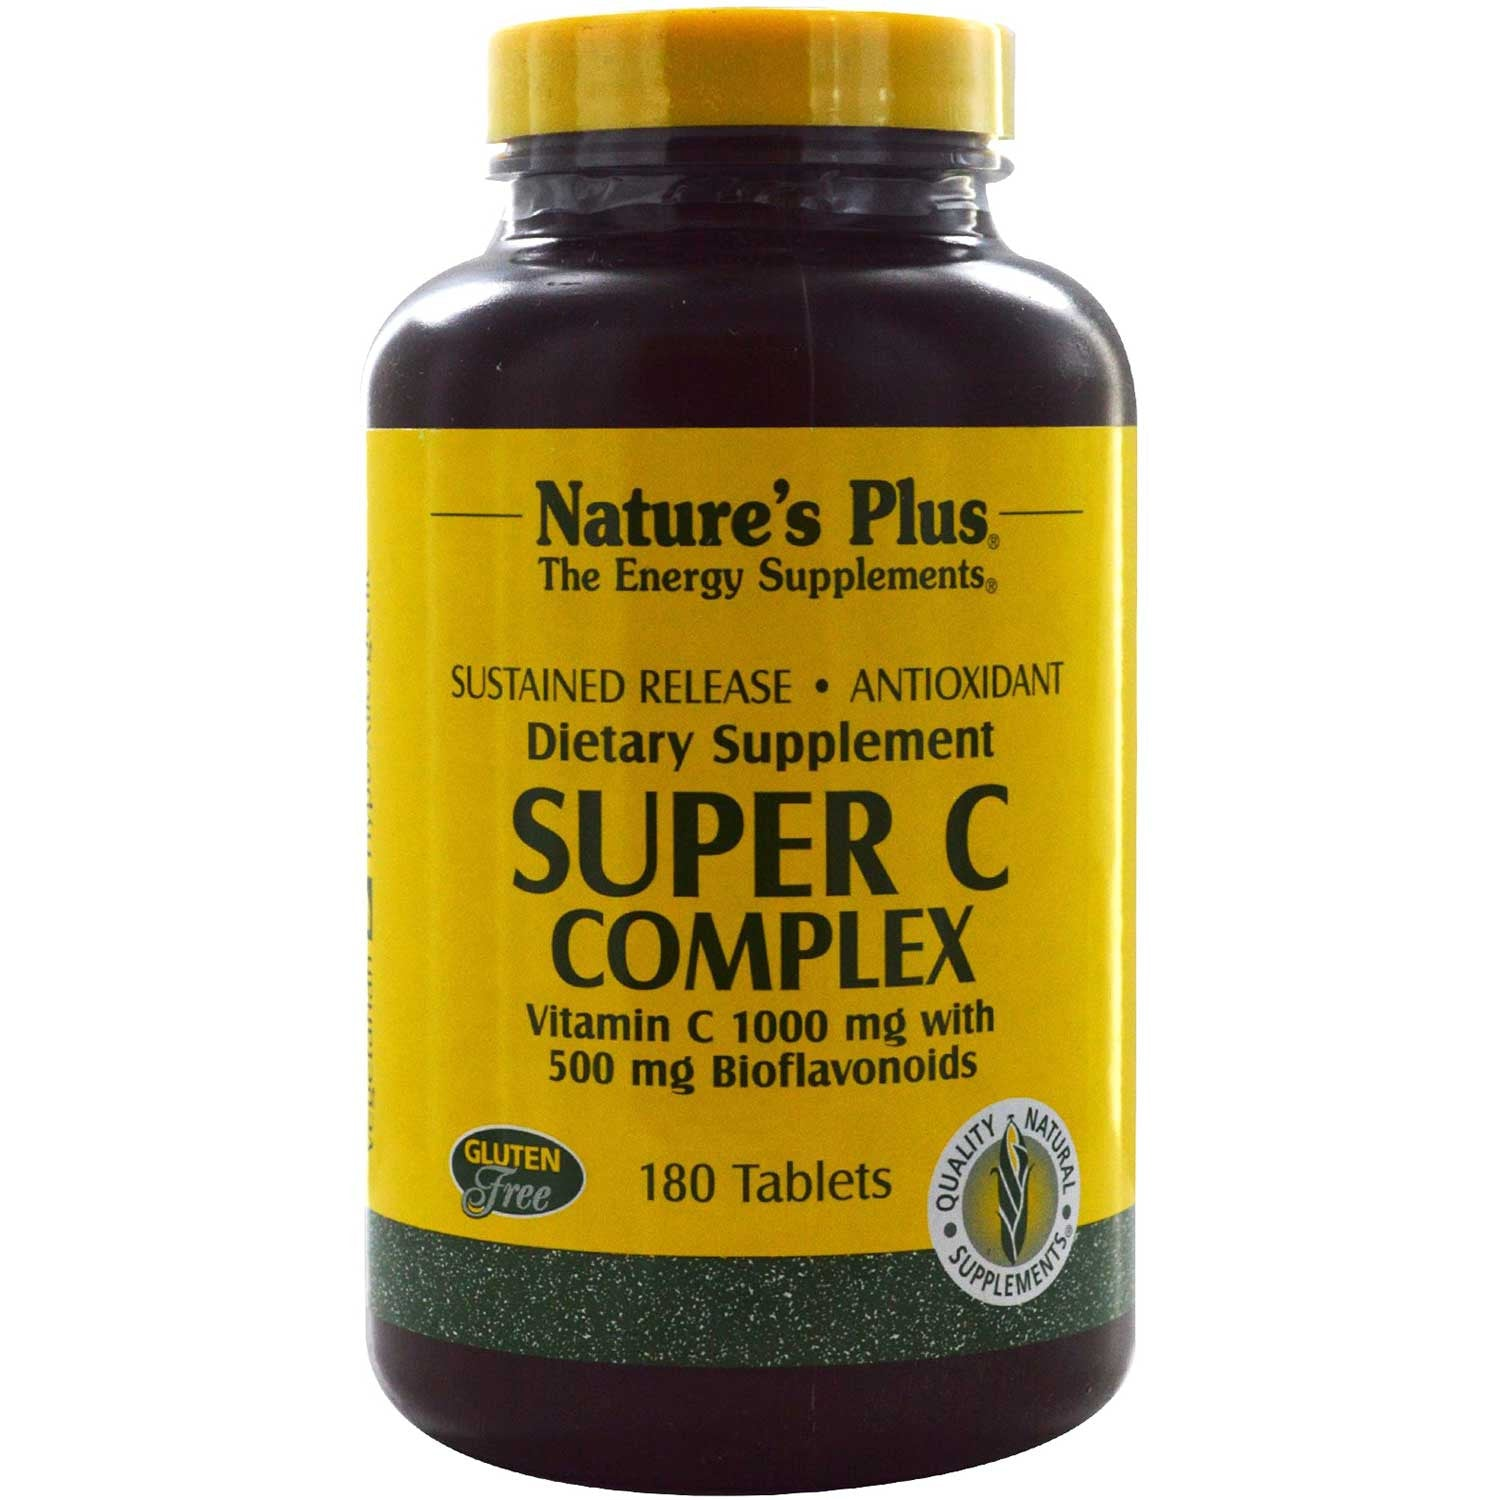 Natures Plus Super C Complex Sustained Release, 180 tabs.-NaturesWisdom